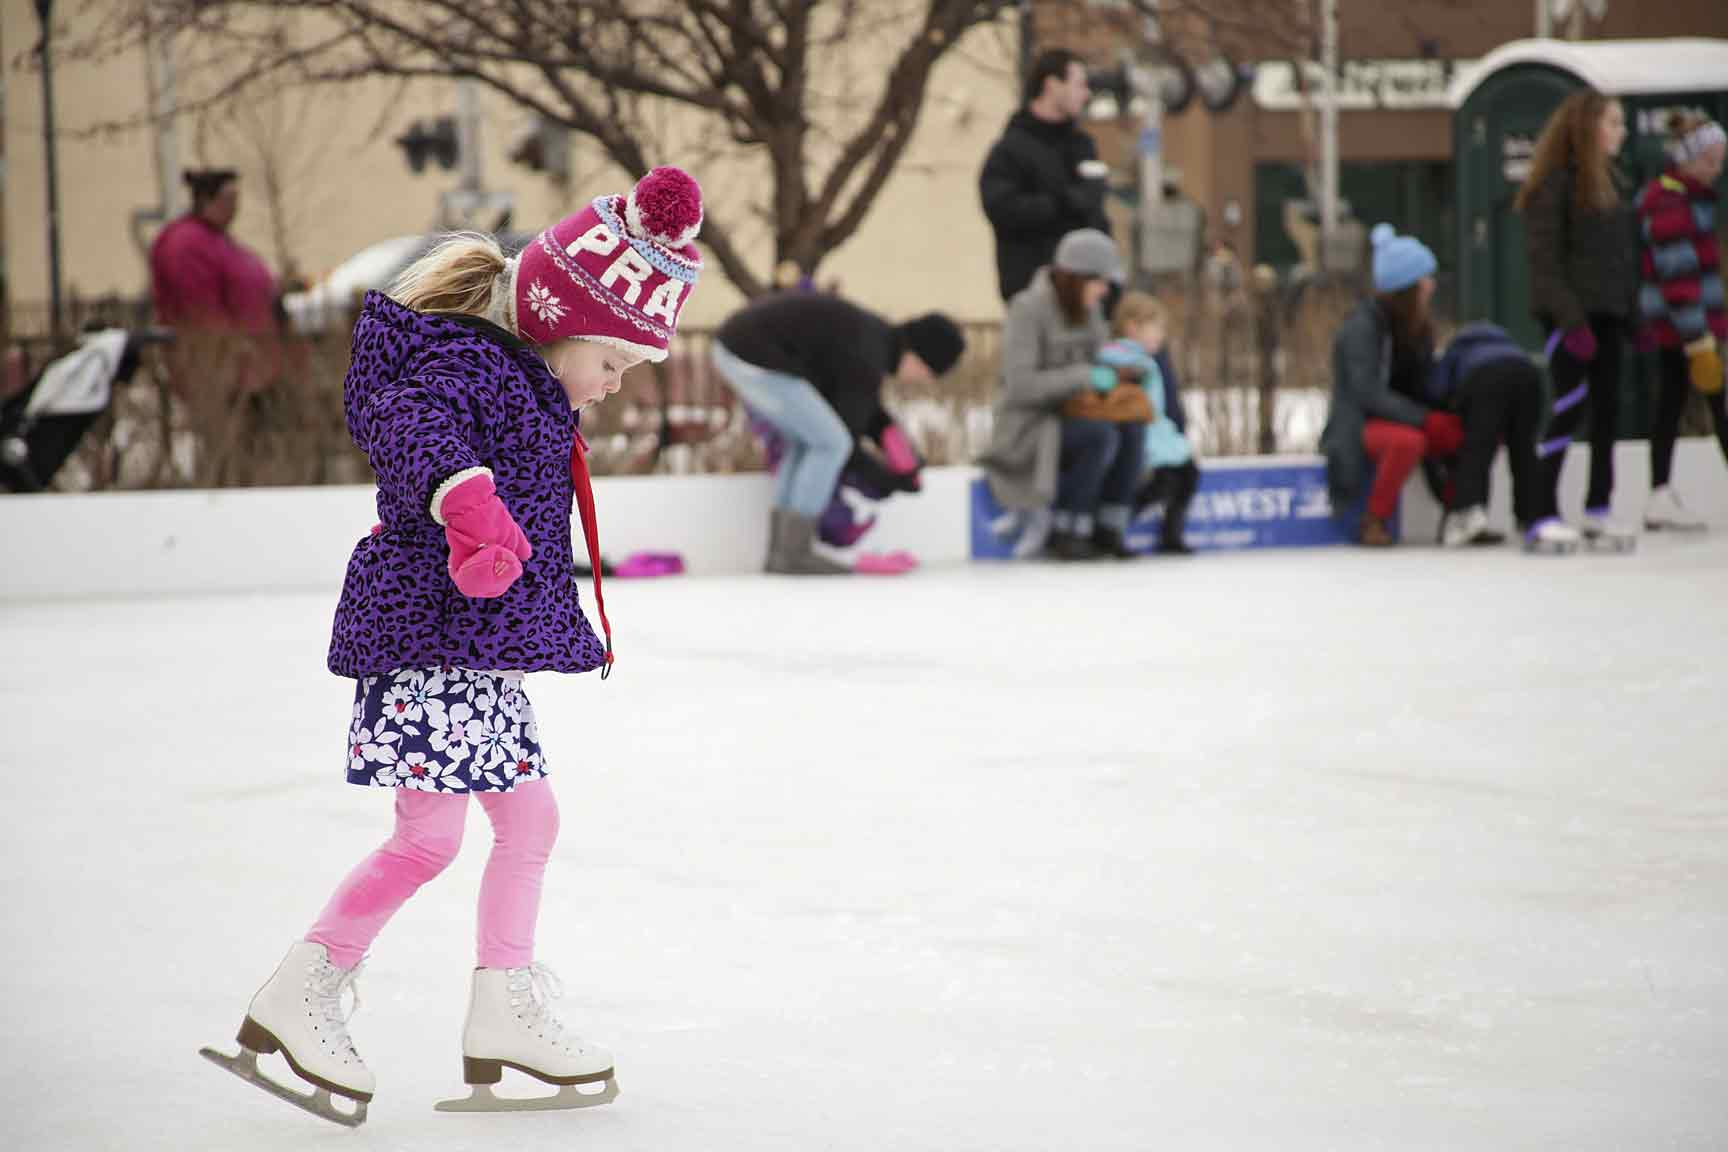 Child ice skating in downtown Fargo